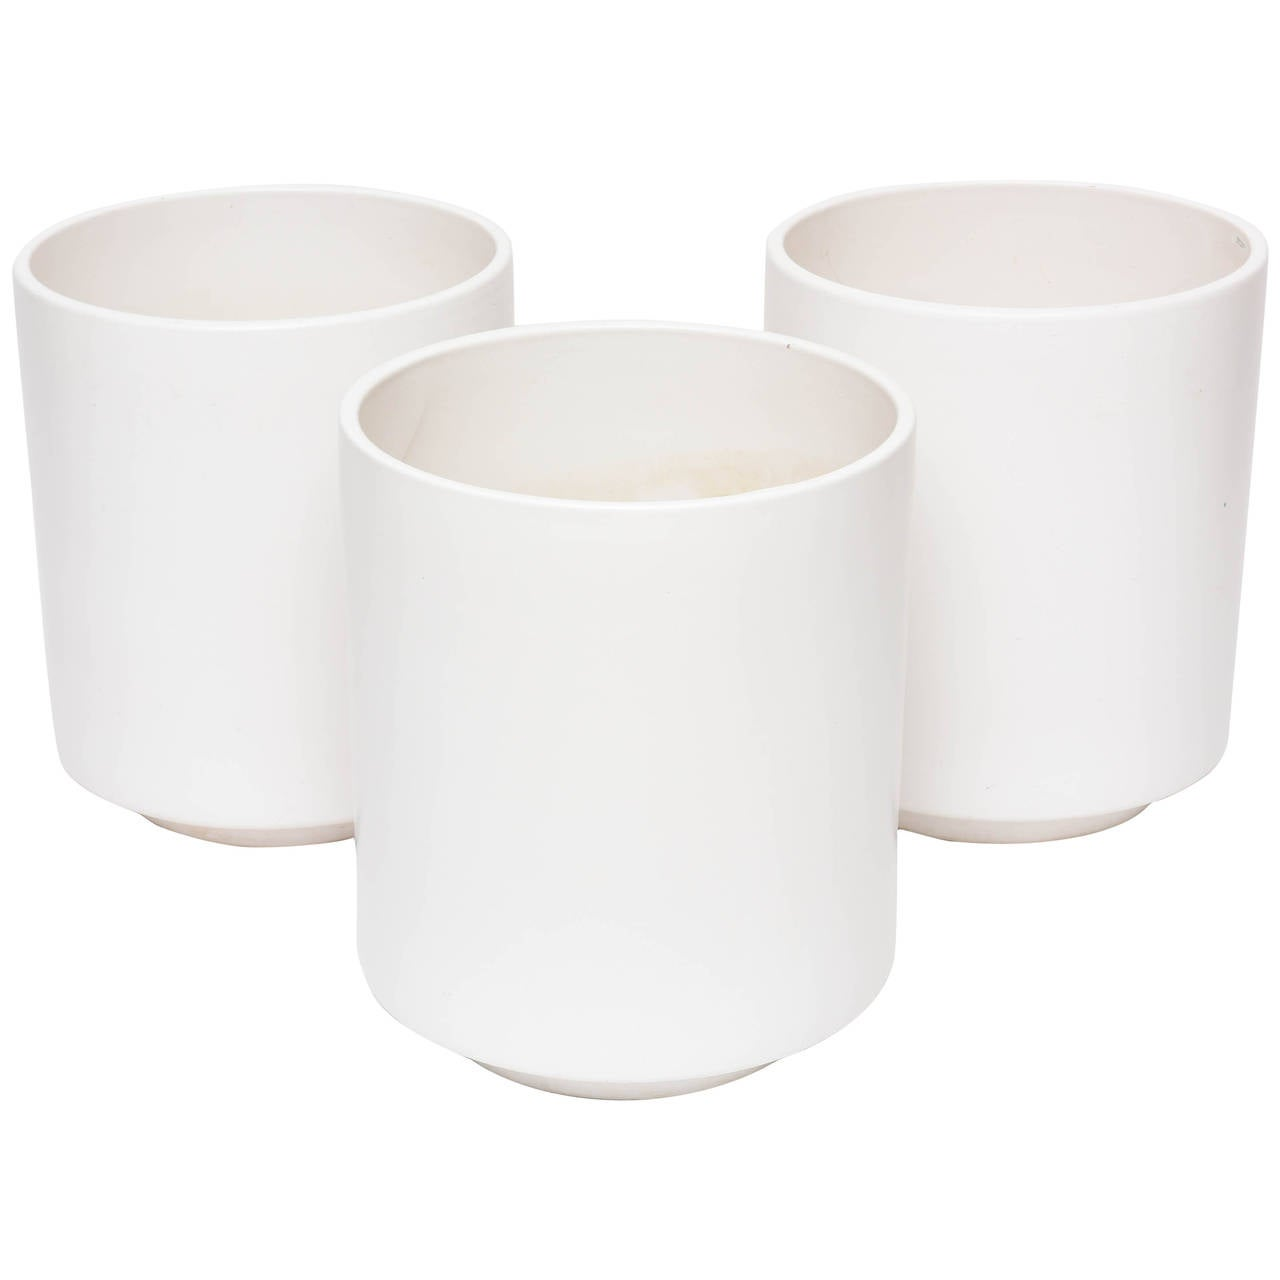 Small White Ceramic Planters Three Large Scale Matte White Planters By Gainey Ceramic